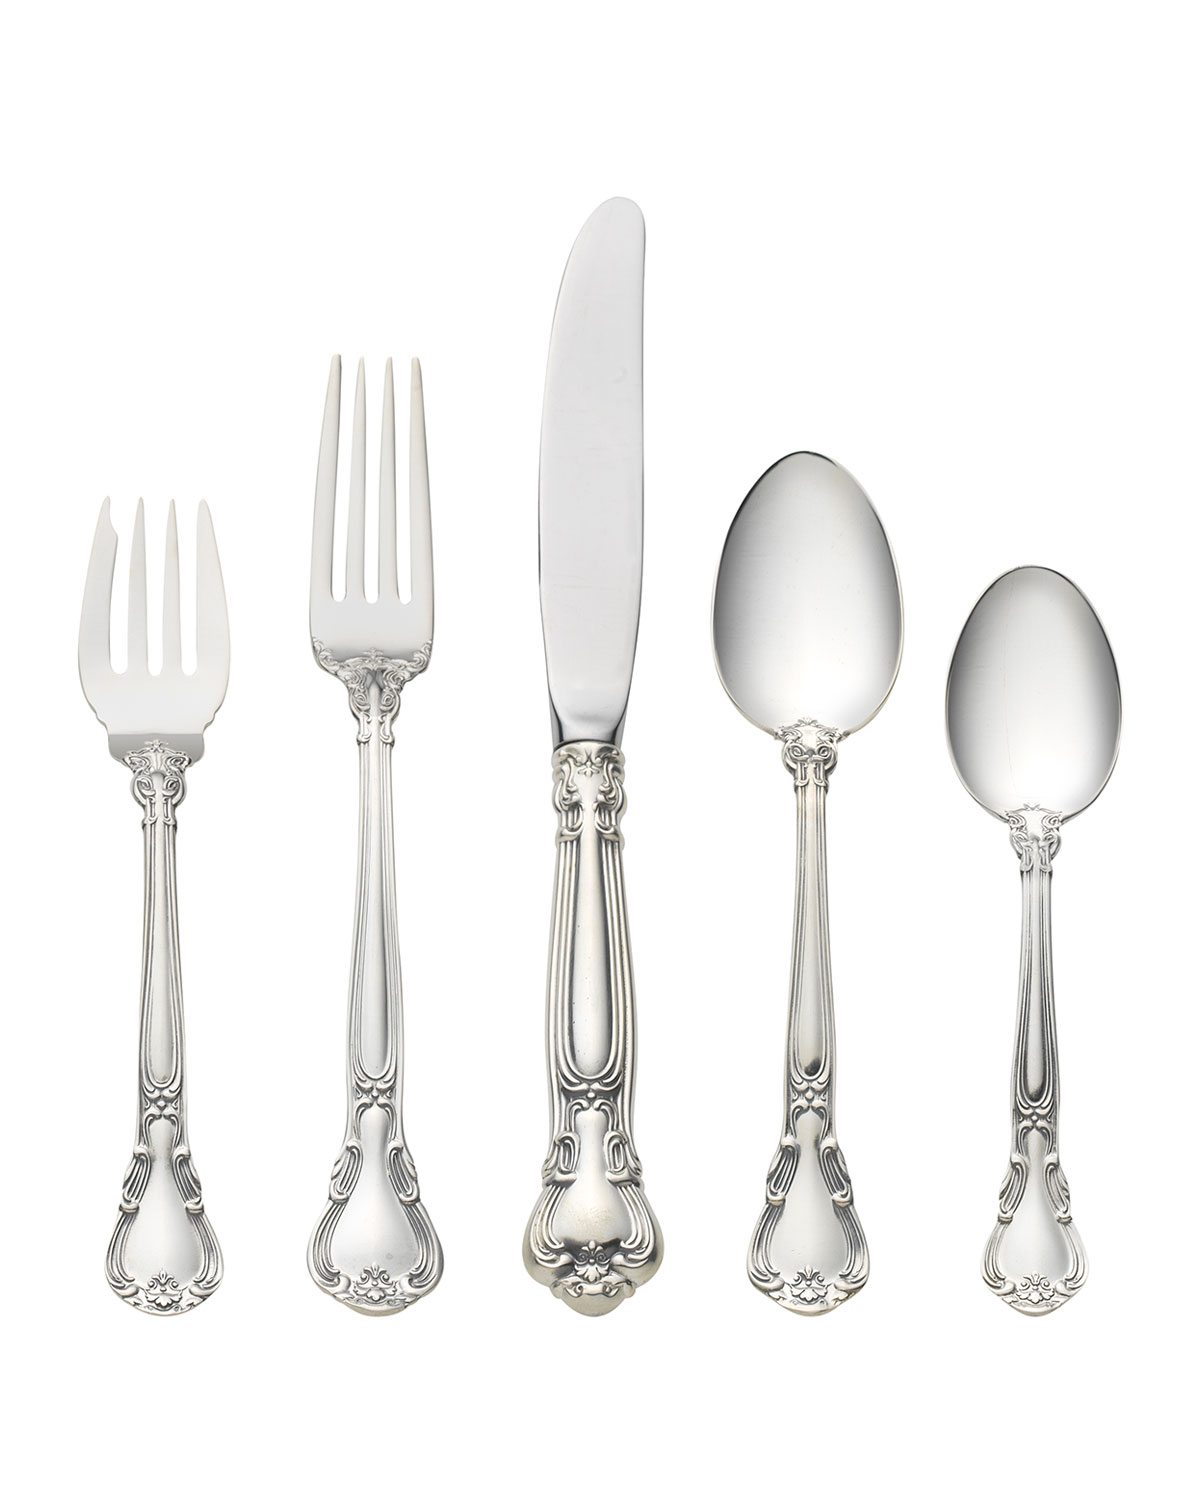 Gorham CHANTILLY 5-PIECE FLATWARE SETTING WITH PLACE SPOON